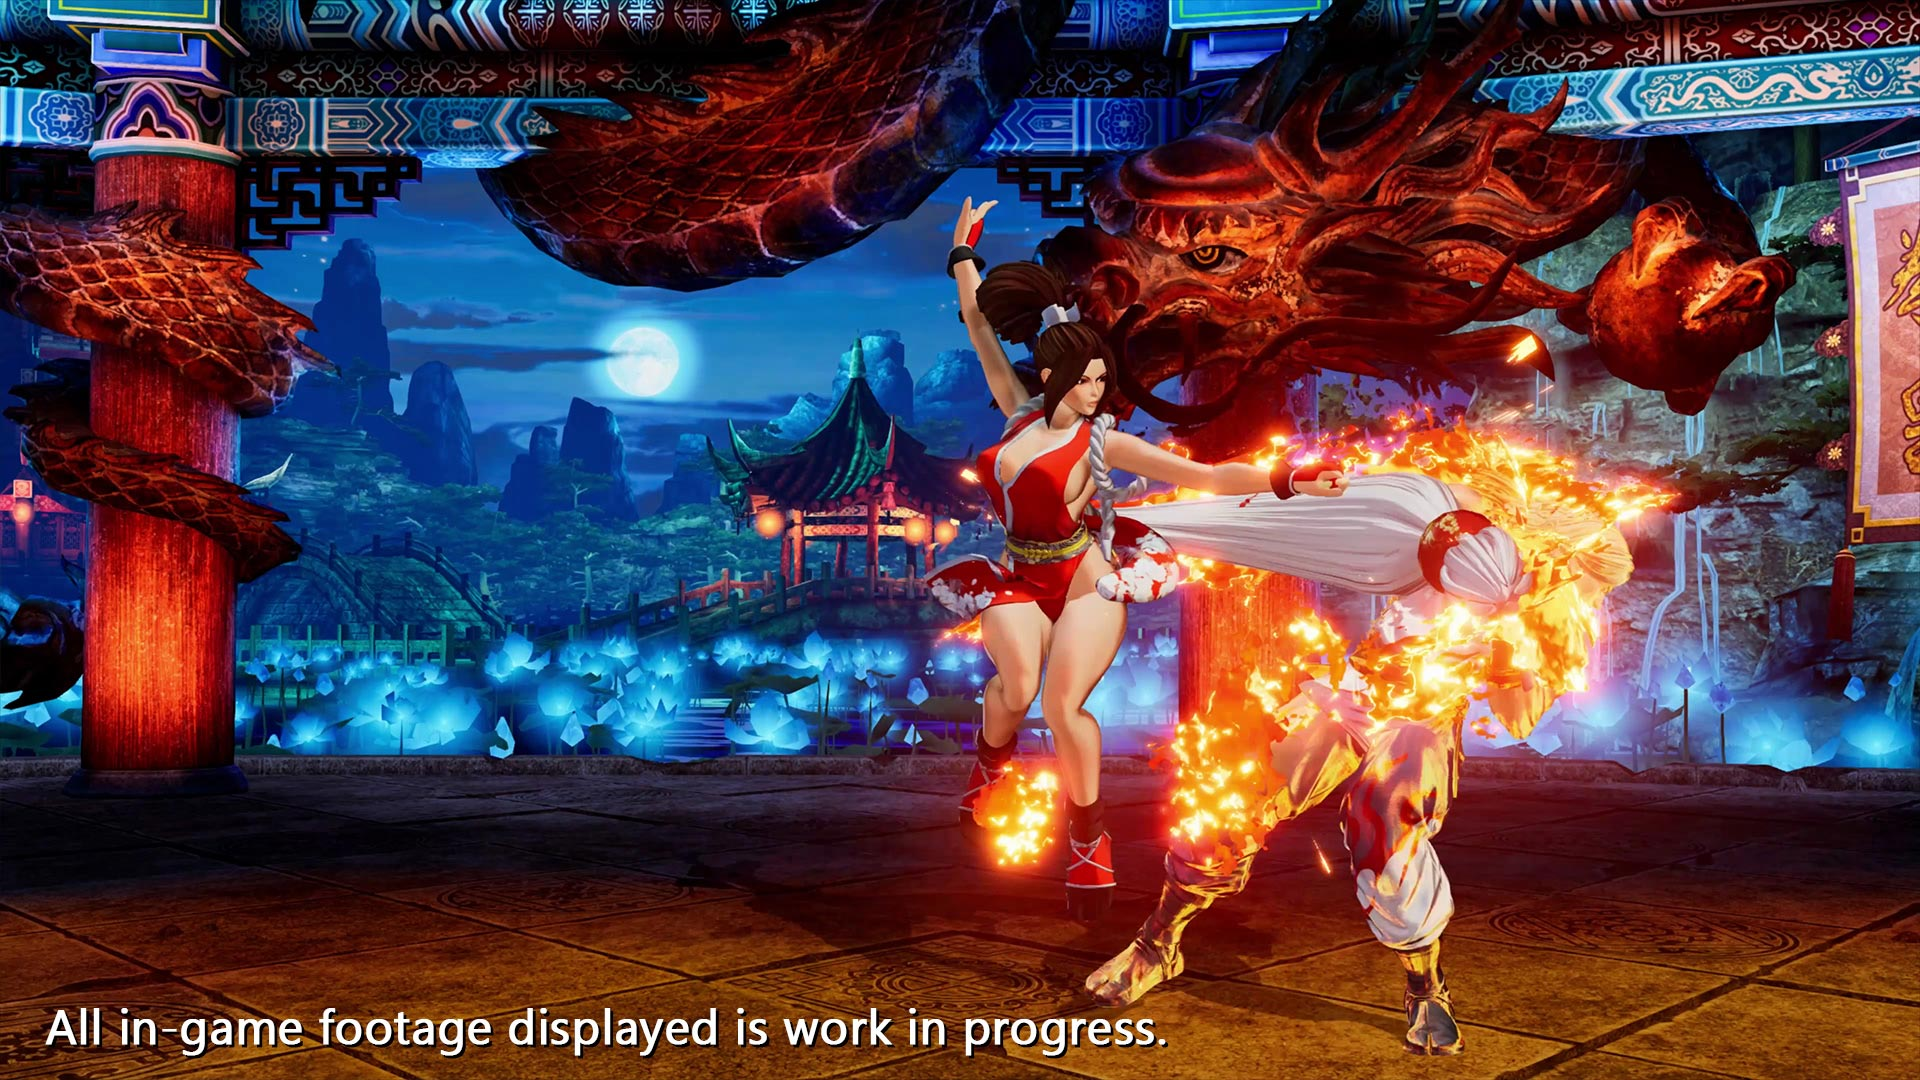 Mai gameplay trailer 1 out of 9 image gallery